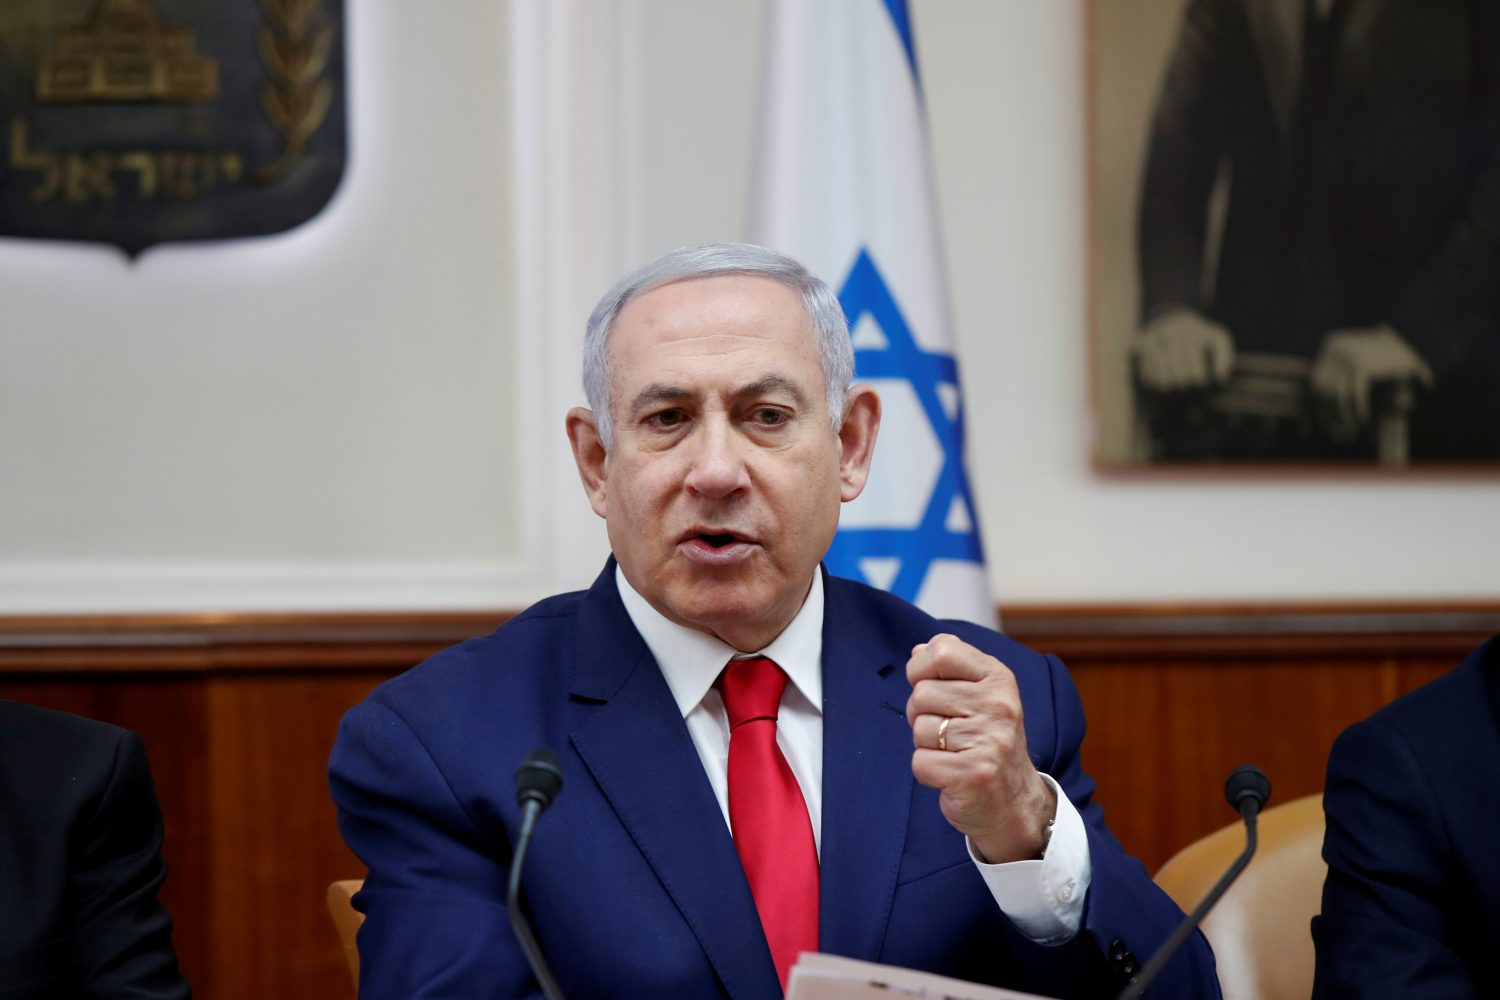 FILE PHOTO: Israeli Prime Minister Benjamin Netanyahu gestures during a weekly cabinet meeting in Jerusalem, April 14, 2019. REUTERS/Ronen Zvulun/File Photo